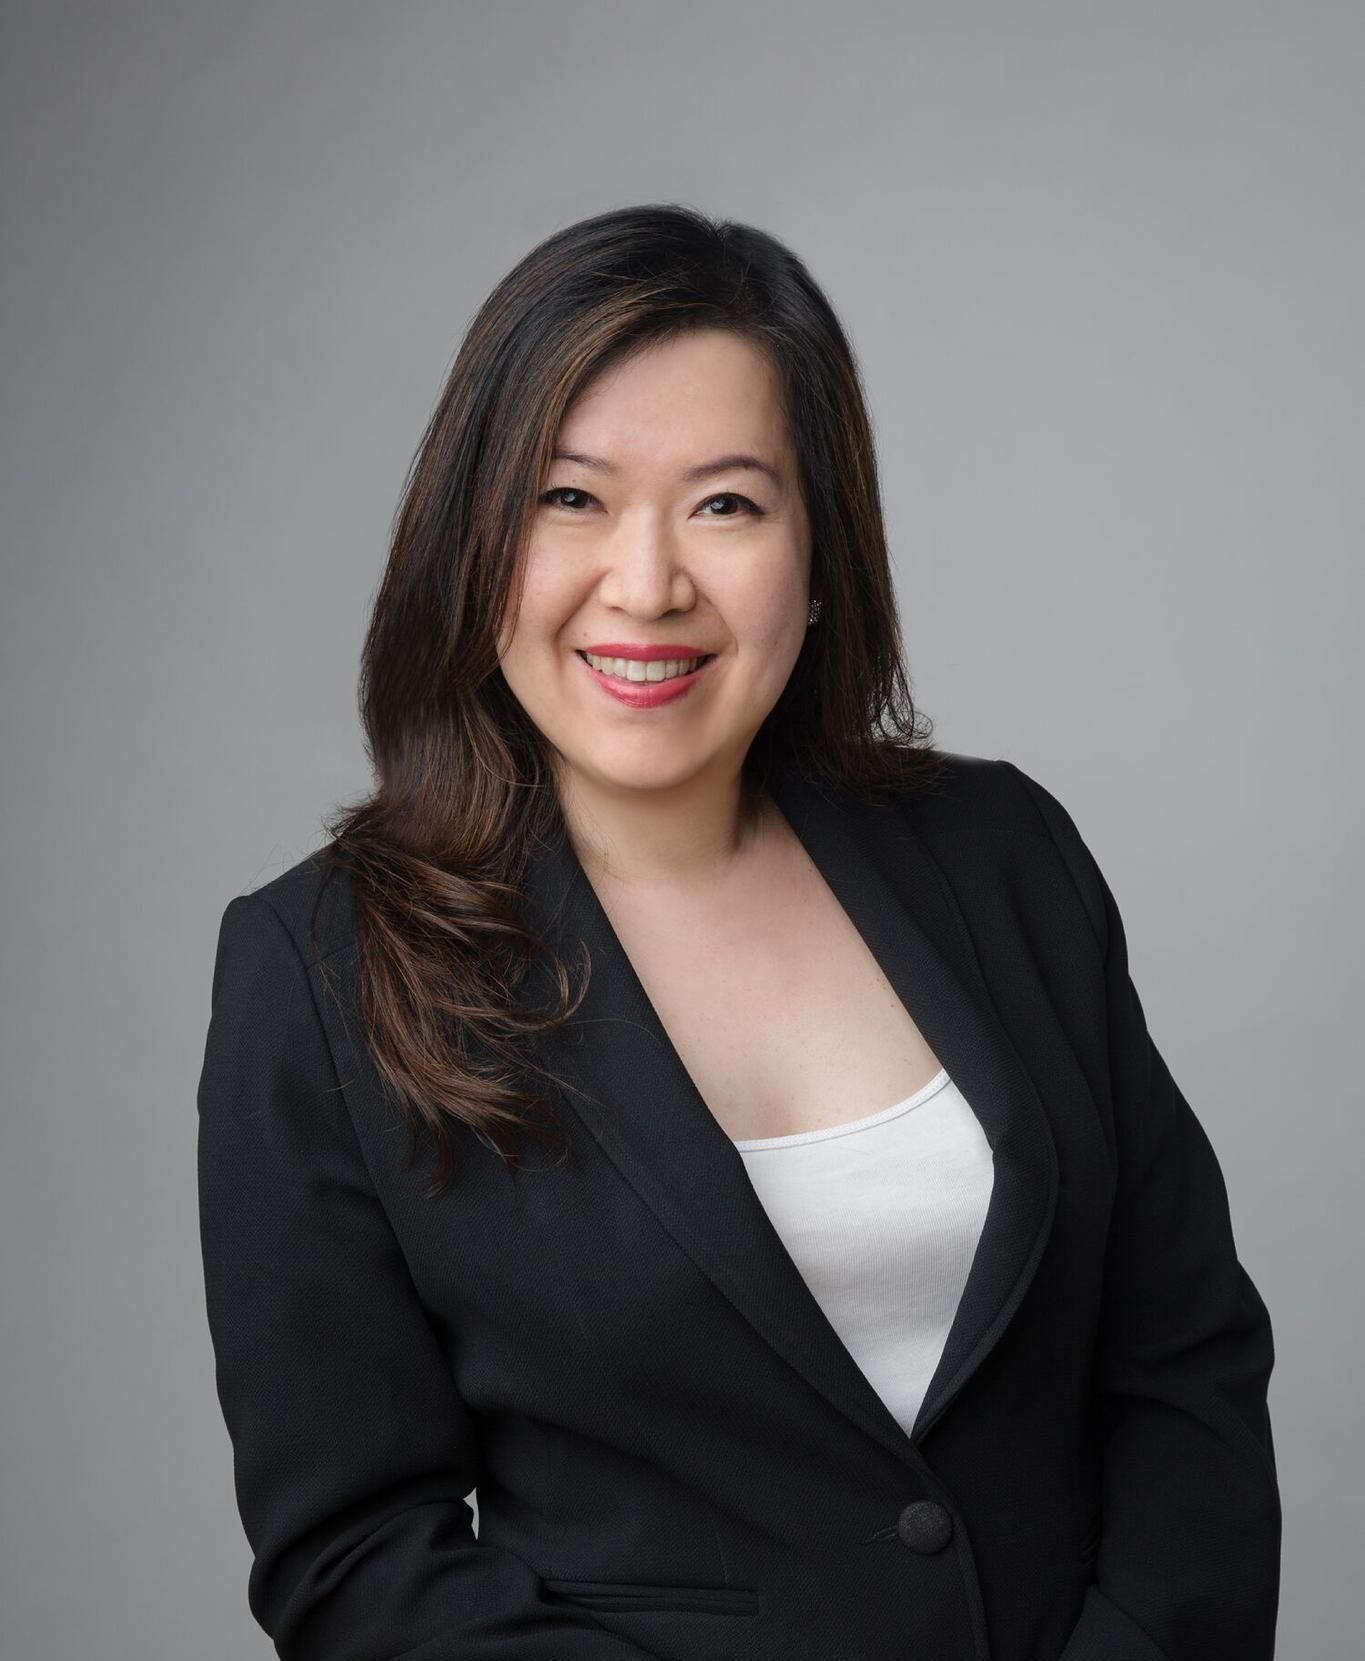 Carolyn Chin Parry